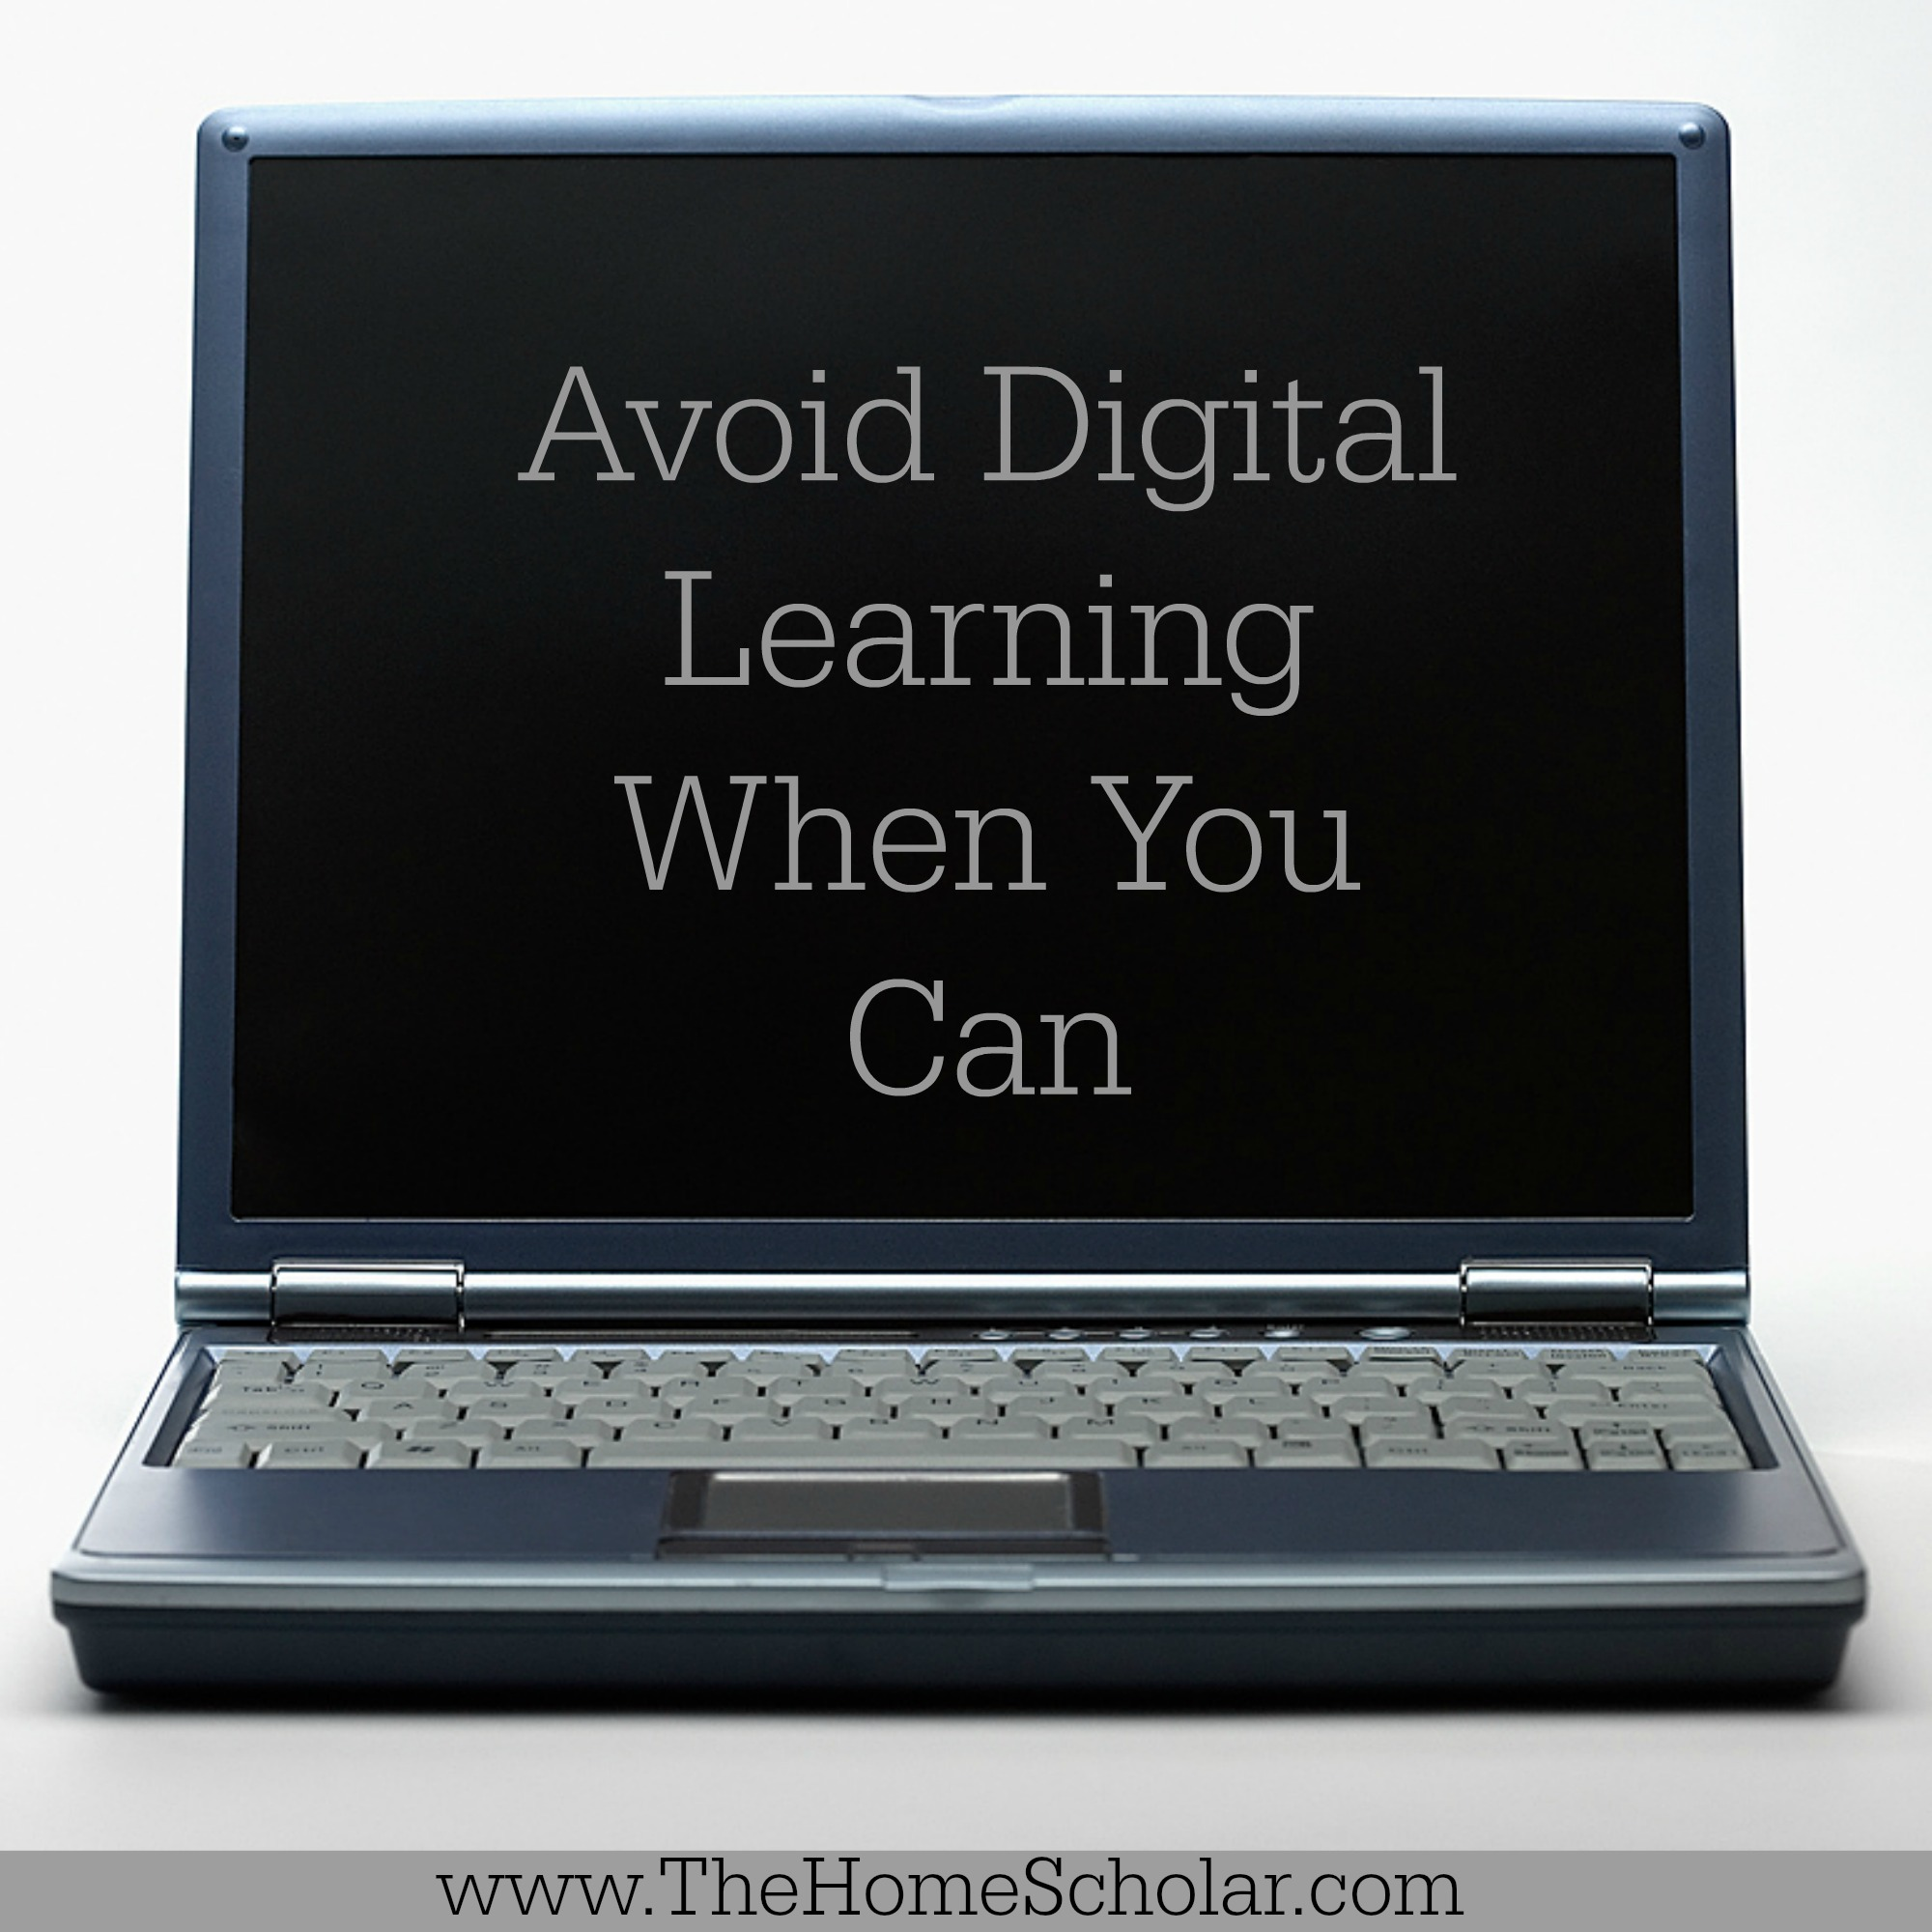 Avoid Digital Learning When You Can